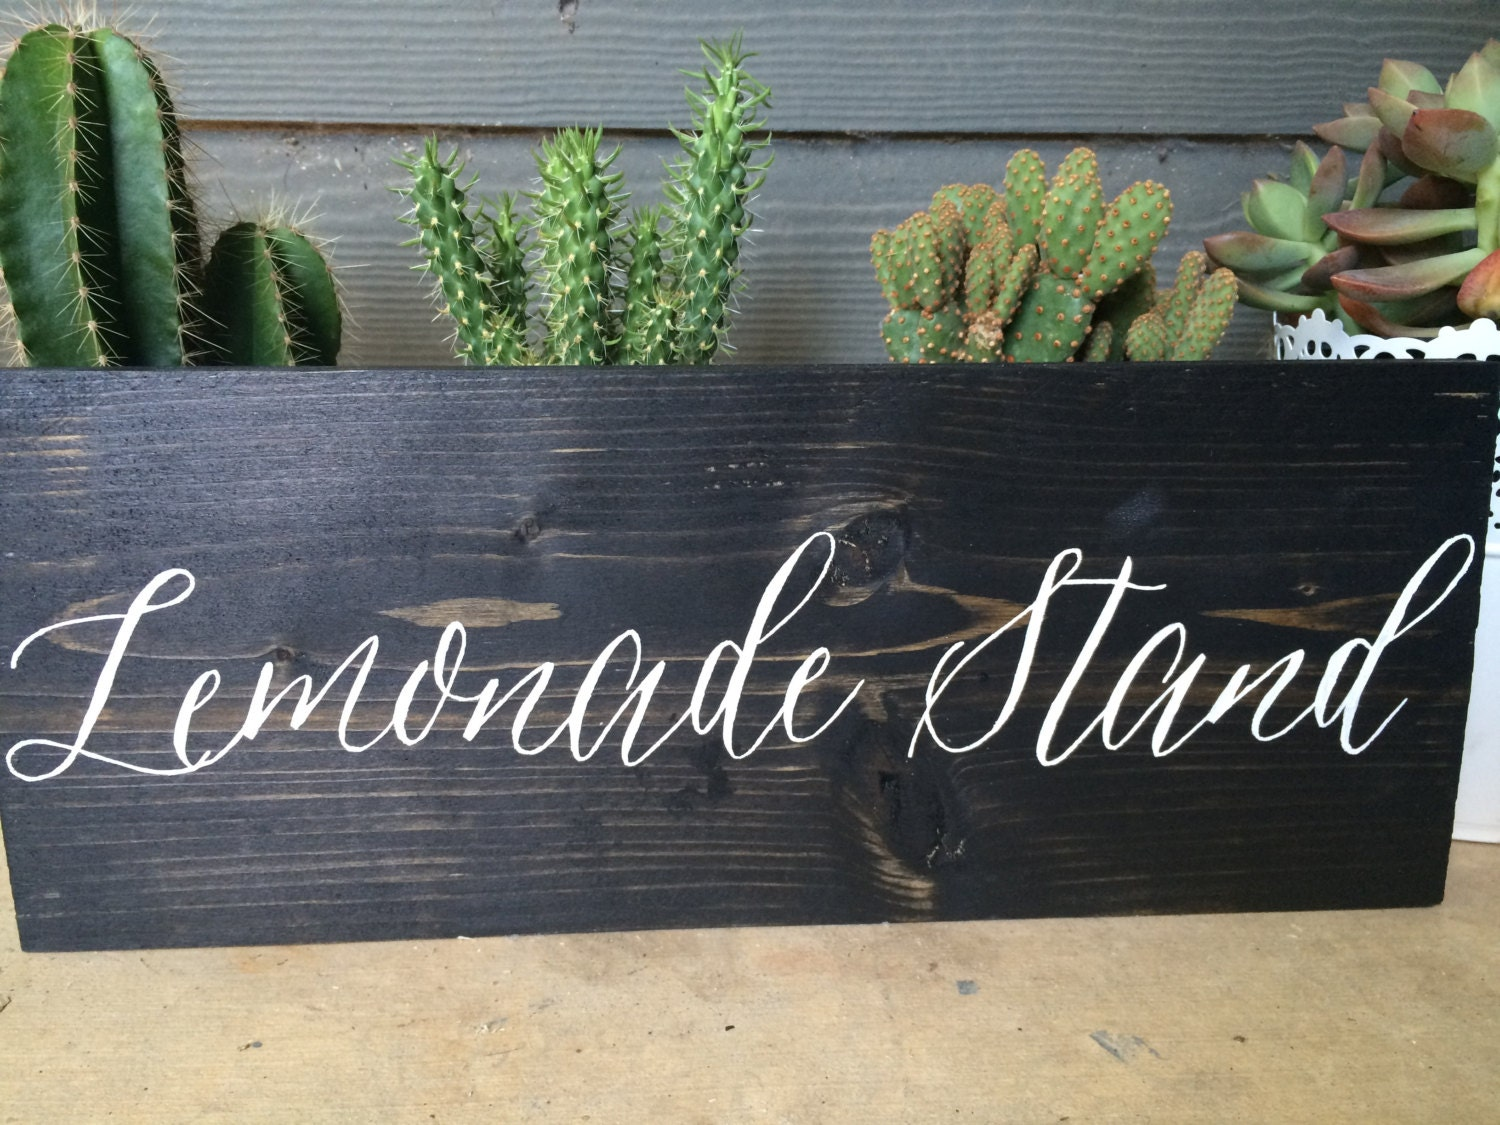 Lemonade stand rustic wooden wedding sign for Rustic lemonade stand